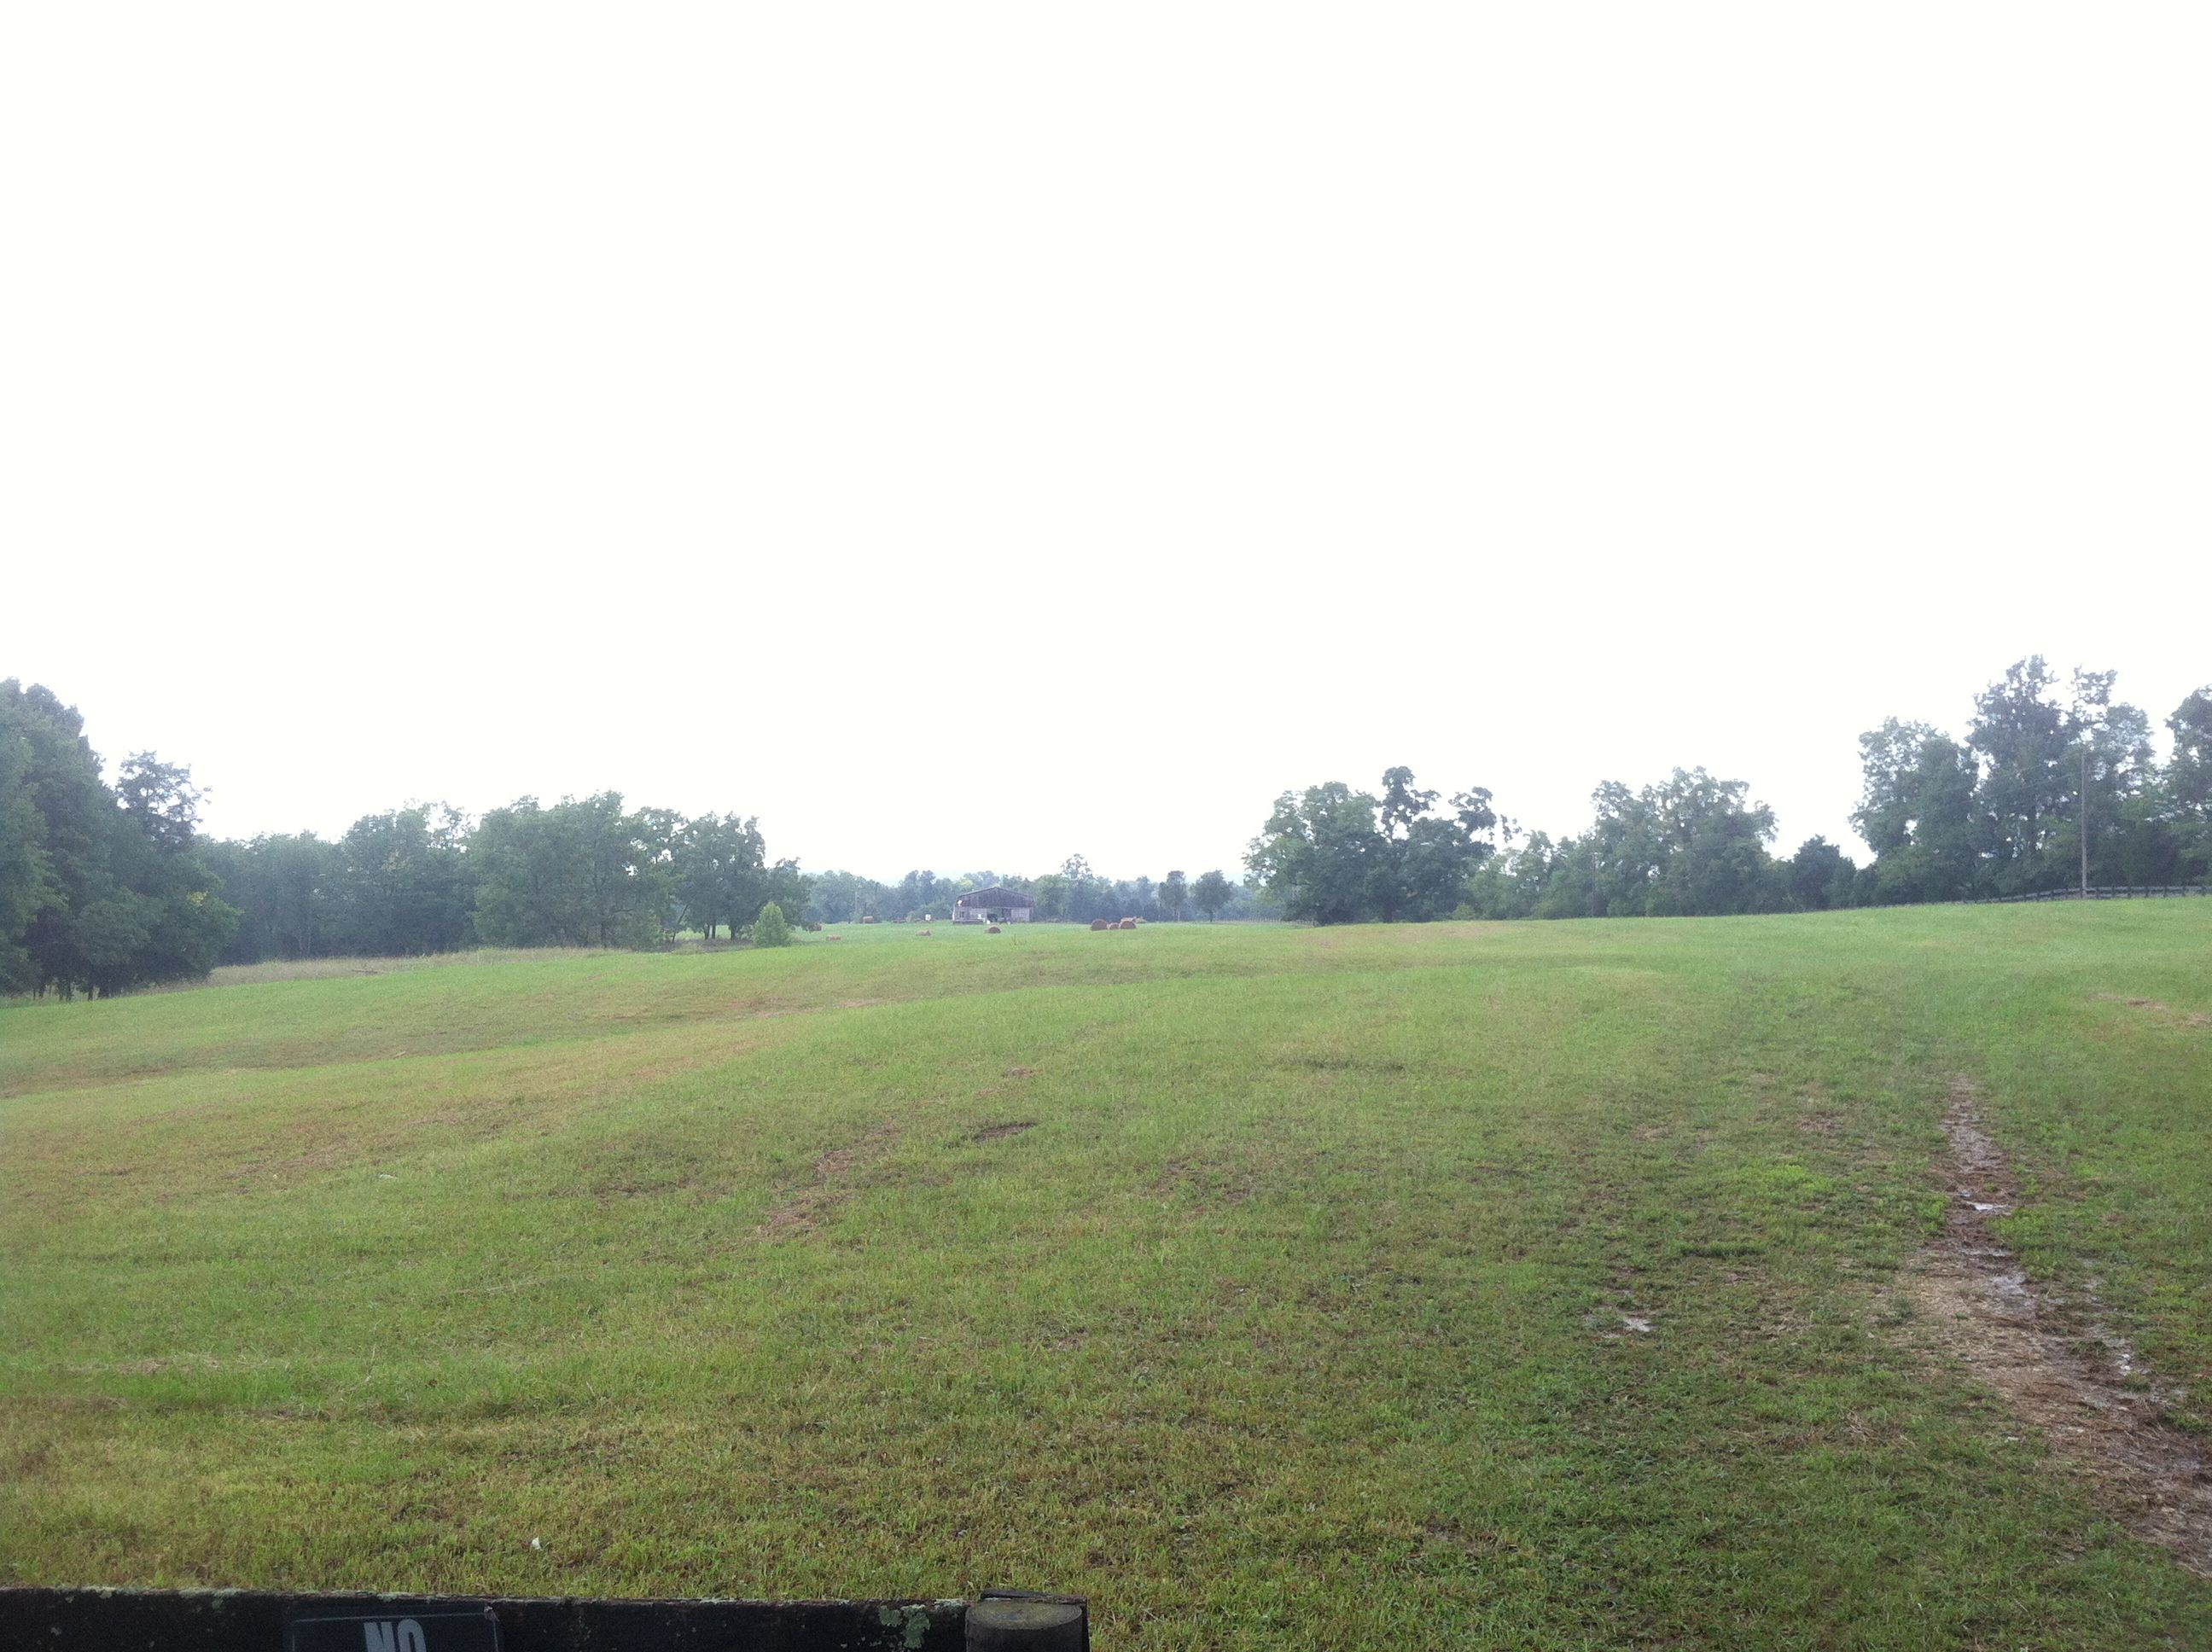 The Kentucky lot prior to construction on Aug 9th 2013. Mason construction starts digging Aug 14th!!